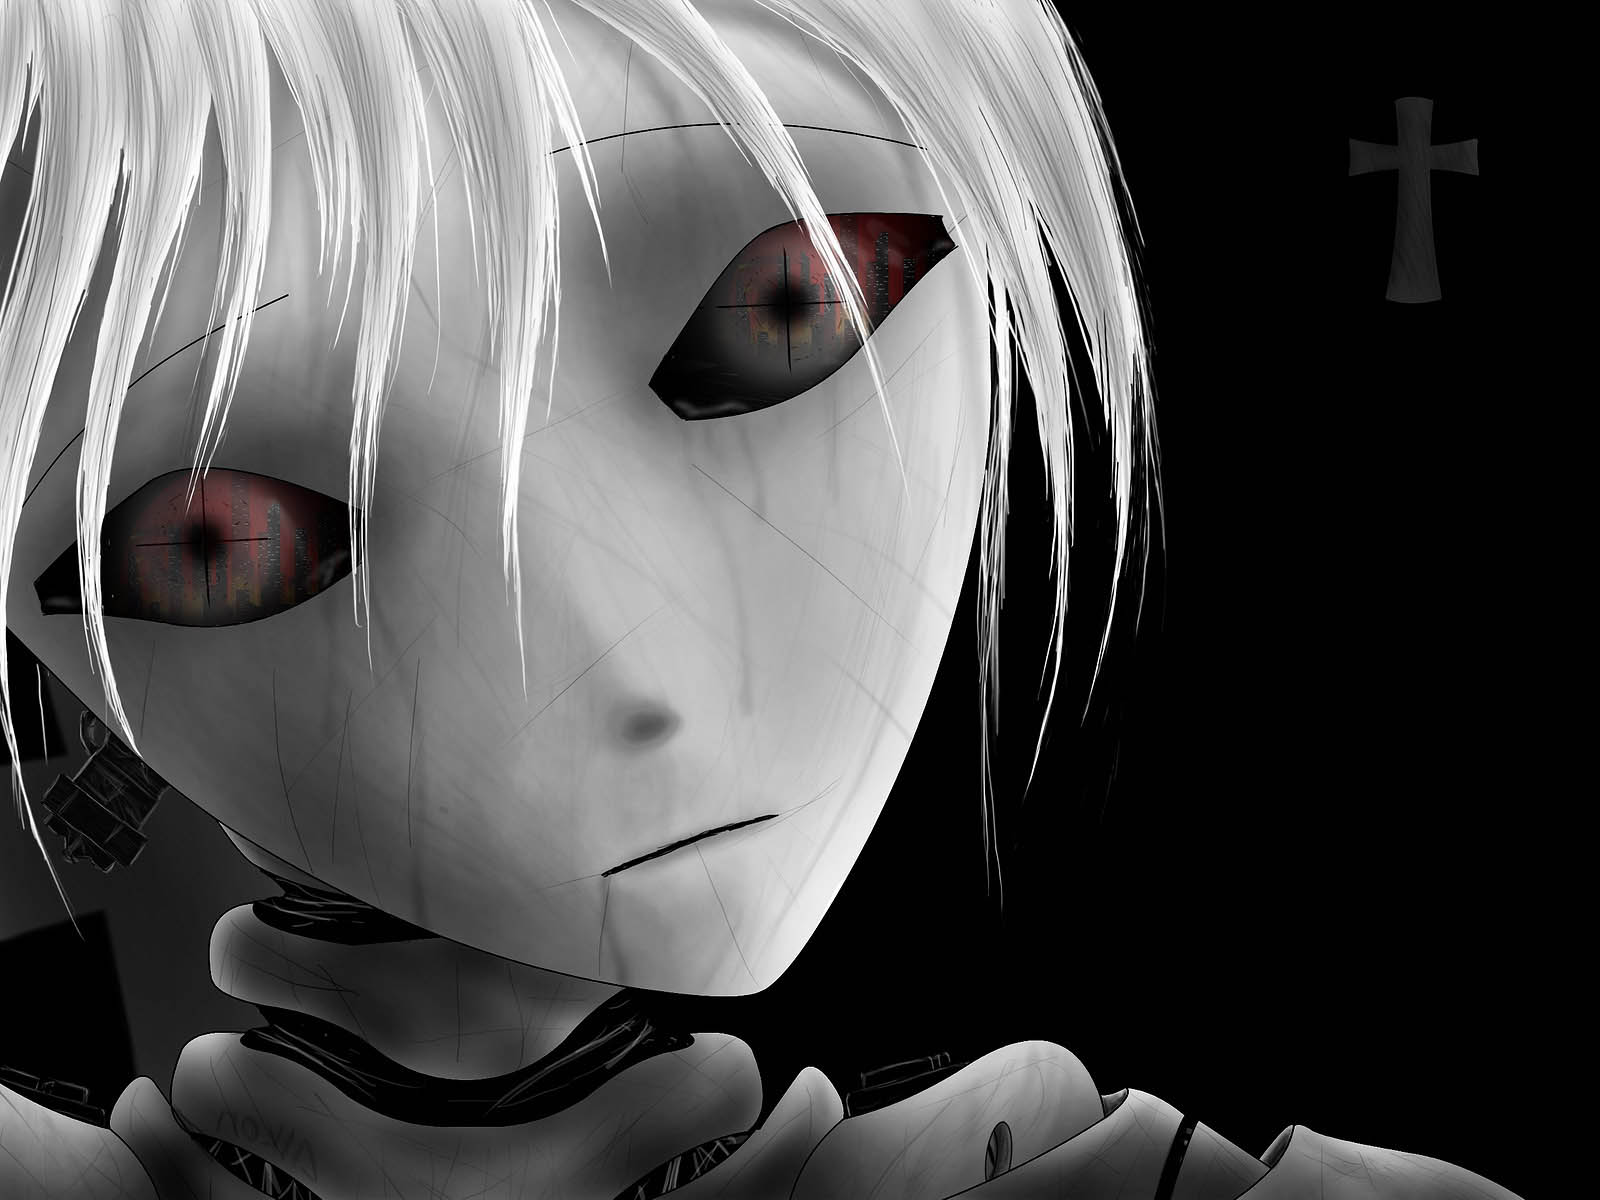 Wallpapers anime girl wallpapers - Black and white anime wallpaper ...